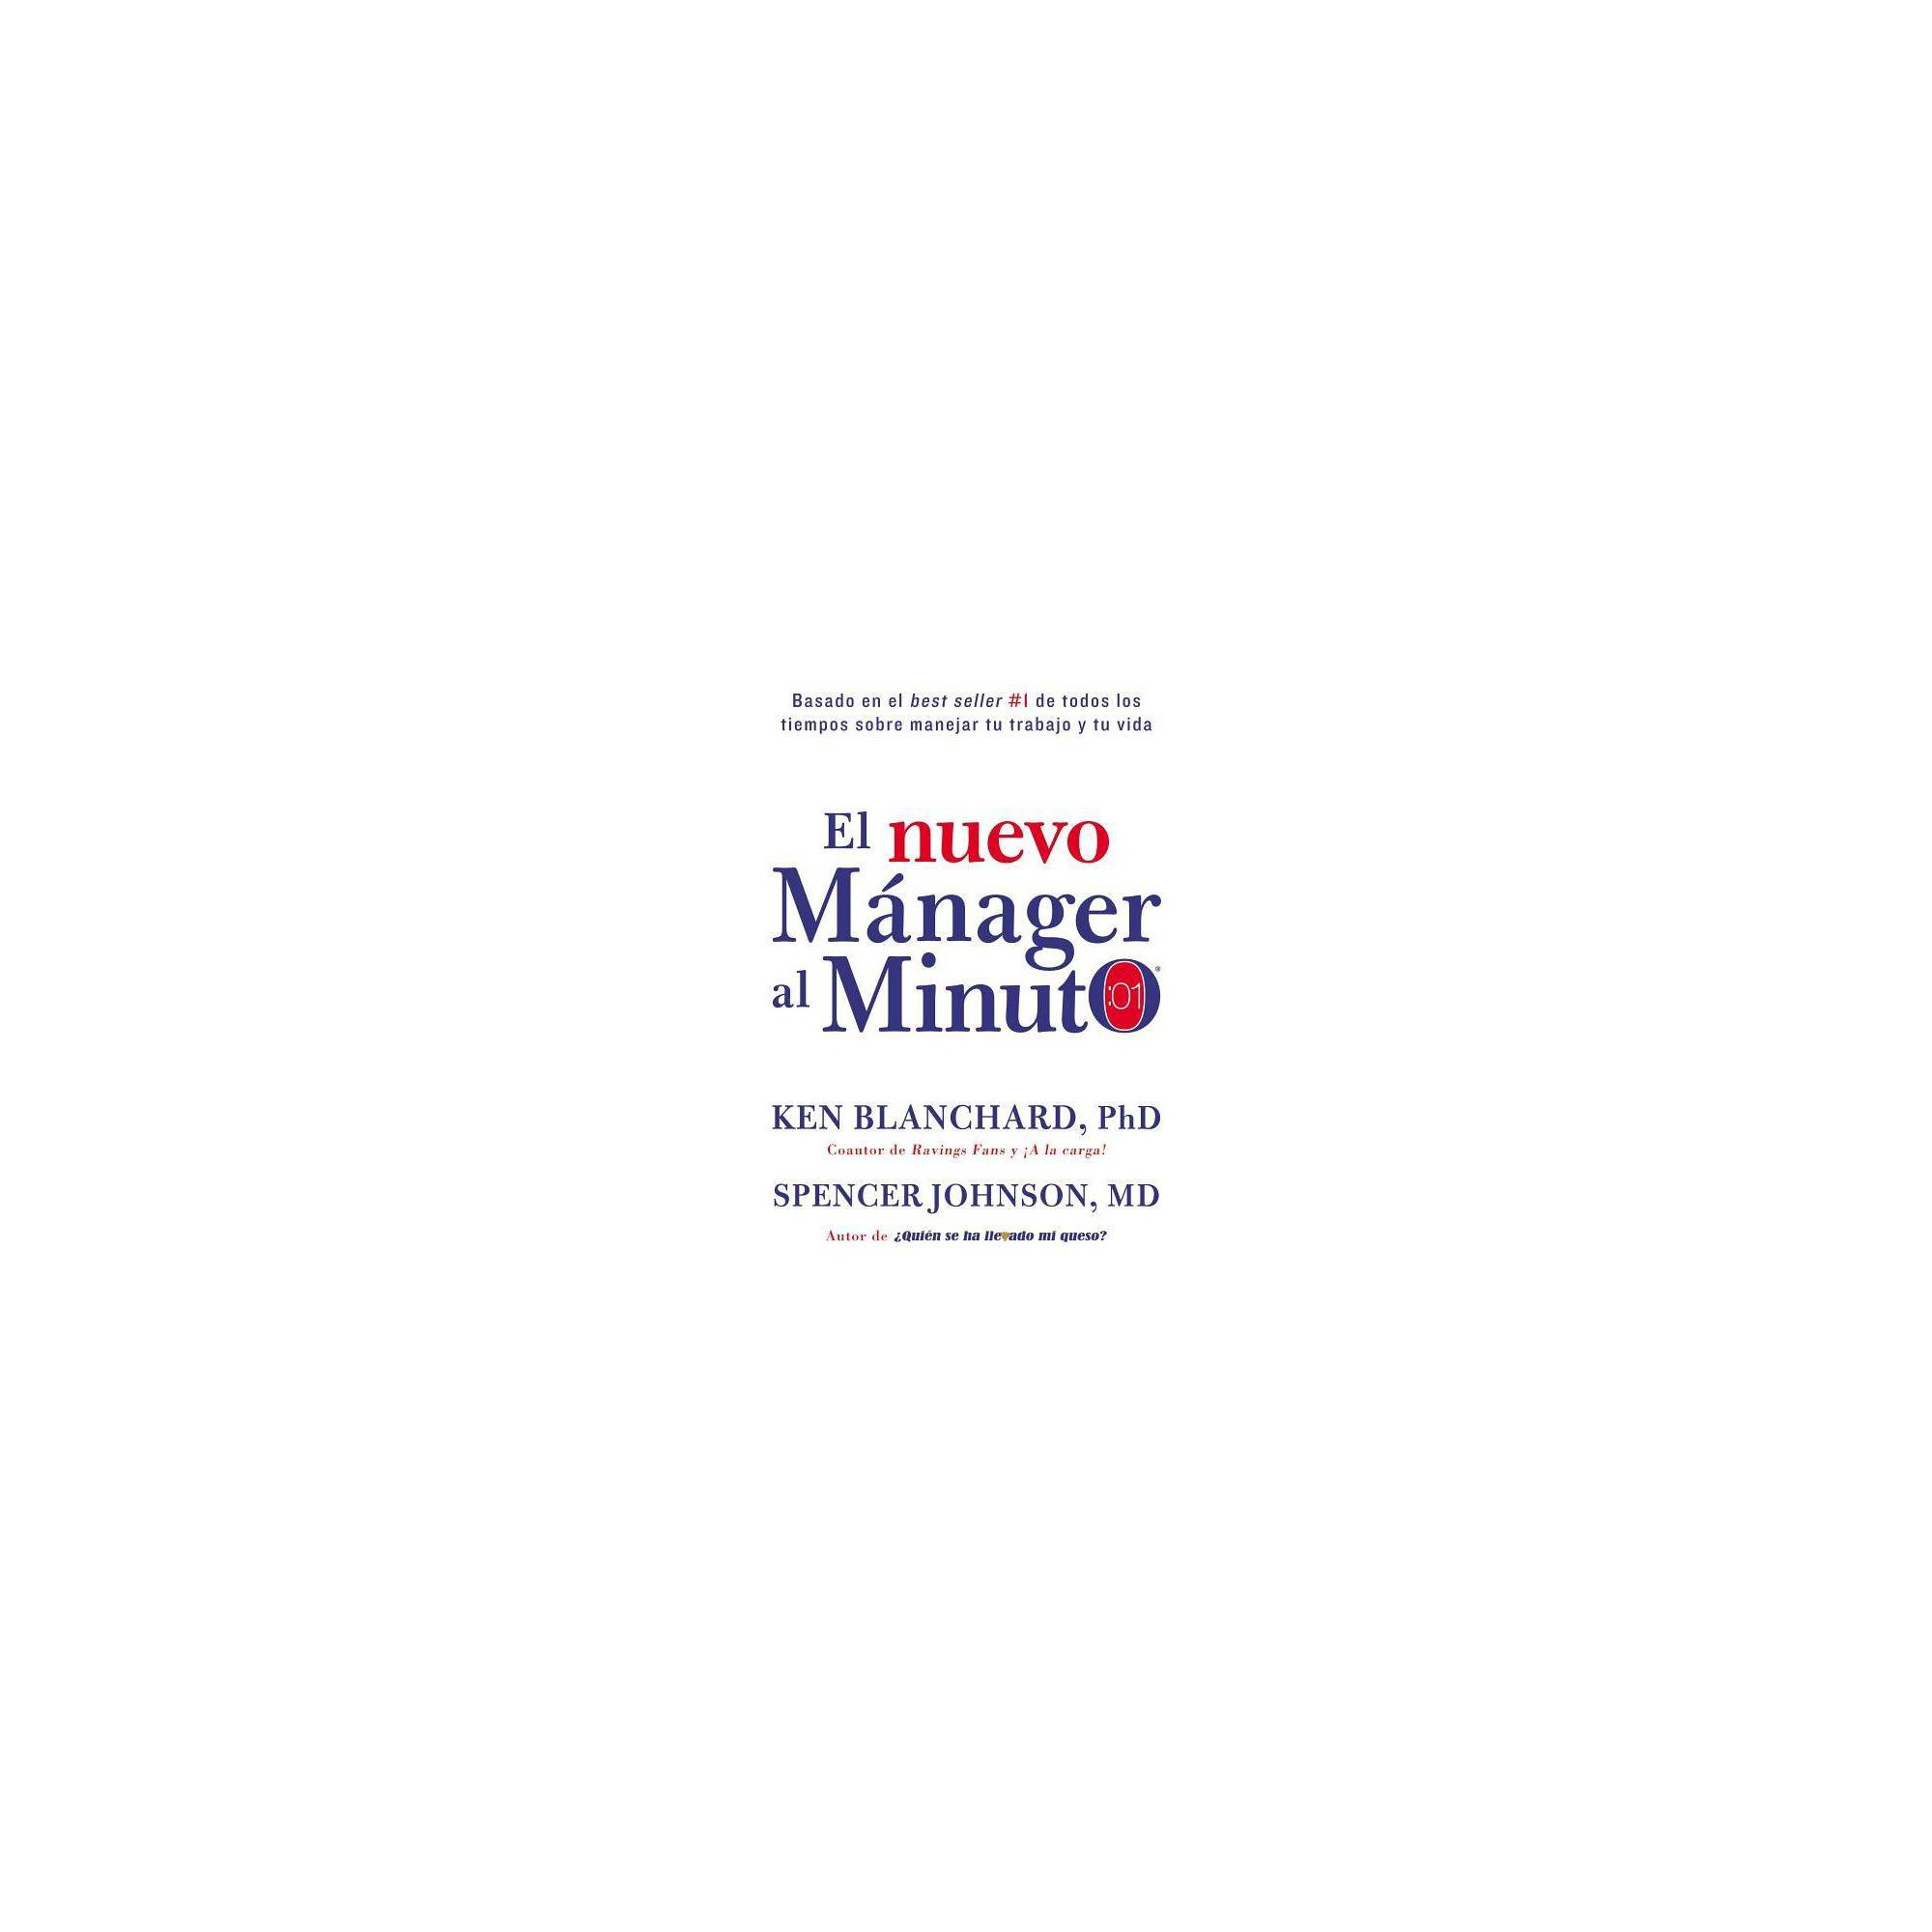 Nuevo Manager Al Minuto One Minute Manager